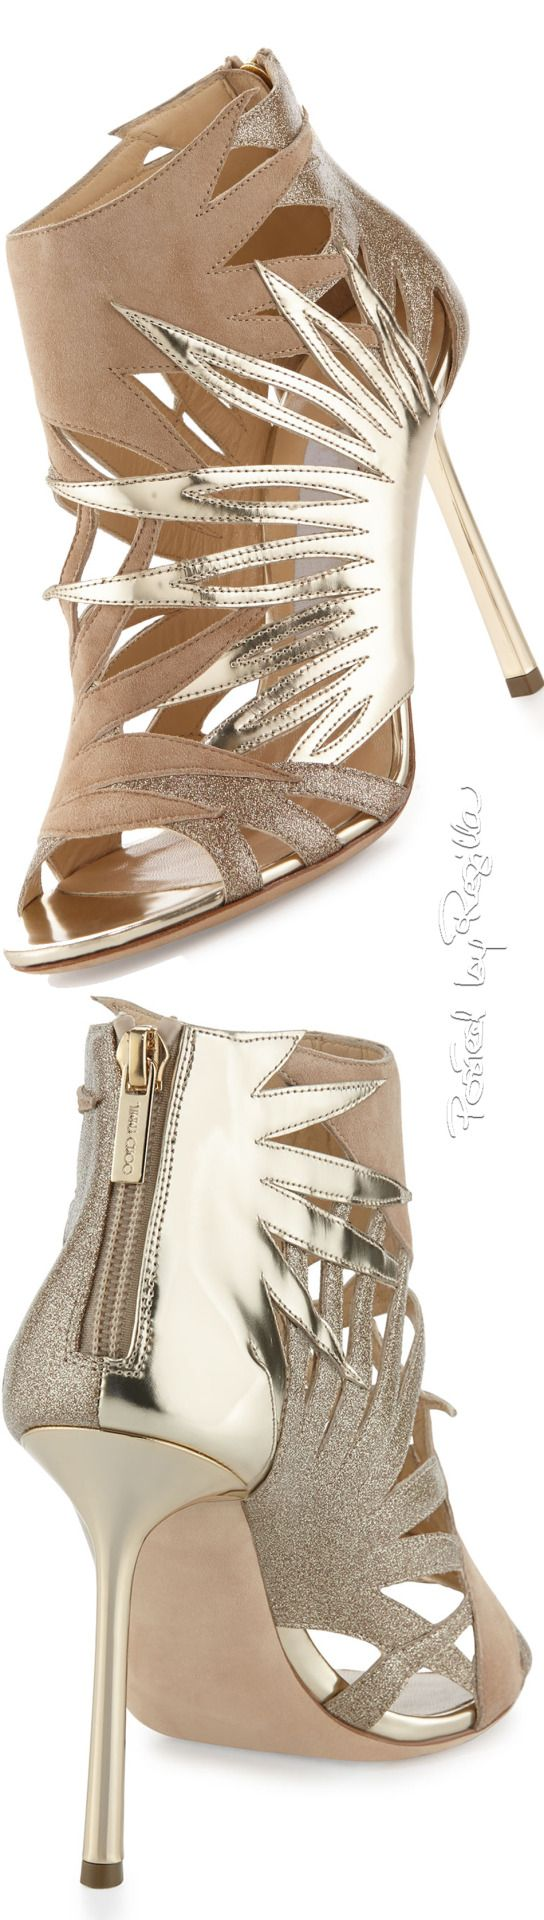 "Regilla ⚜ Jimmy Choo❤︎....Perfect for spring.....""How to make high heels comfortable - you tube  at    https://www.youtube.com/watch?v=OwGBW17fdxU   ...also see hopscotch in heels!!..."